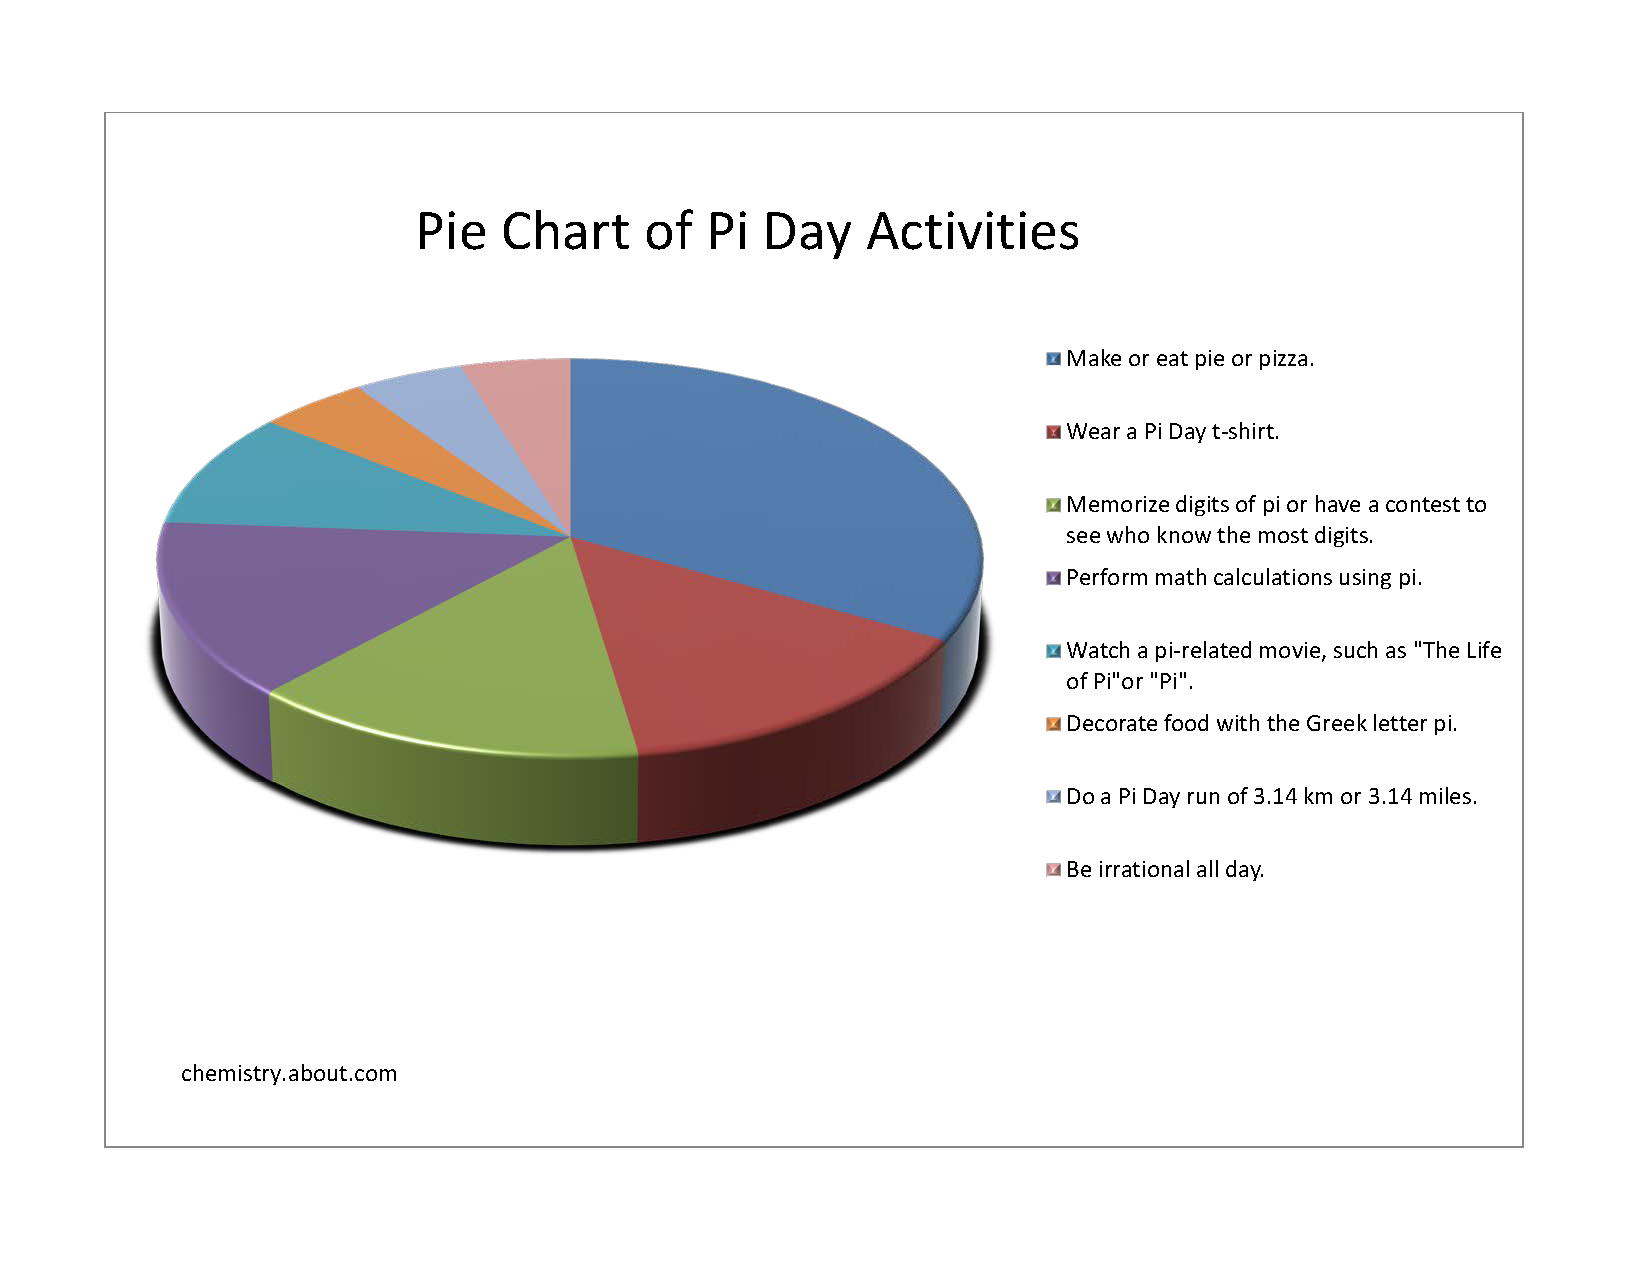 Pi day activities maryland math madness a pi day pie chart of activities from here nvjuhfo Image collections